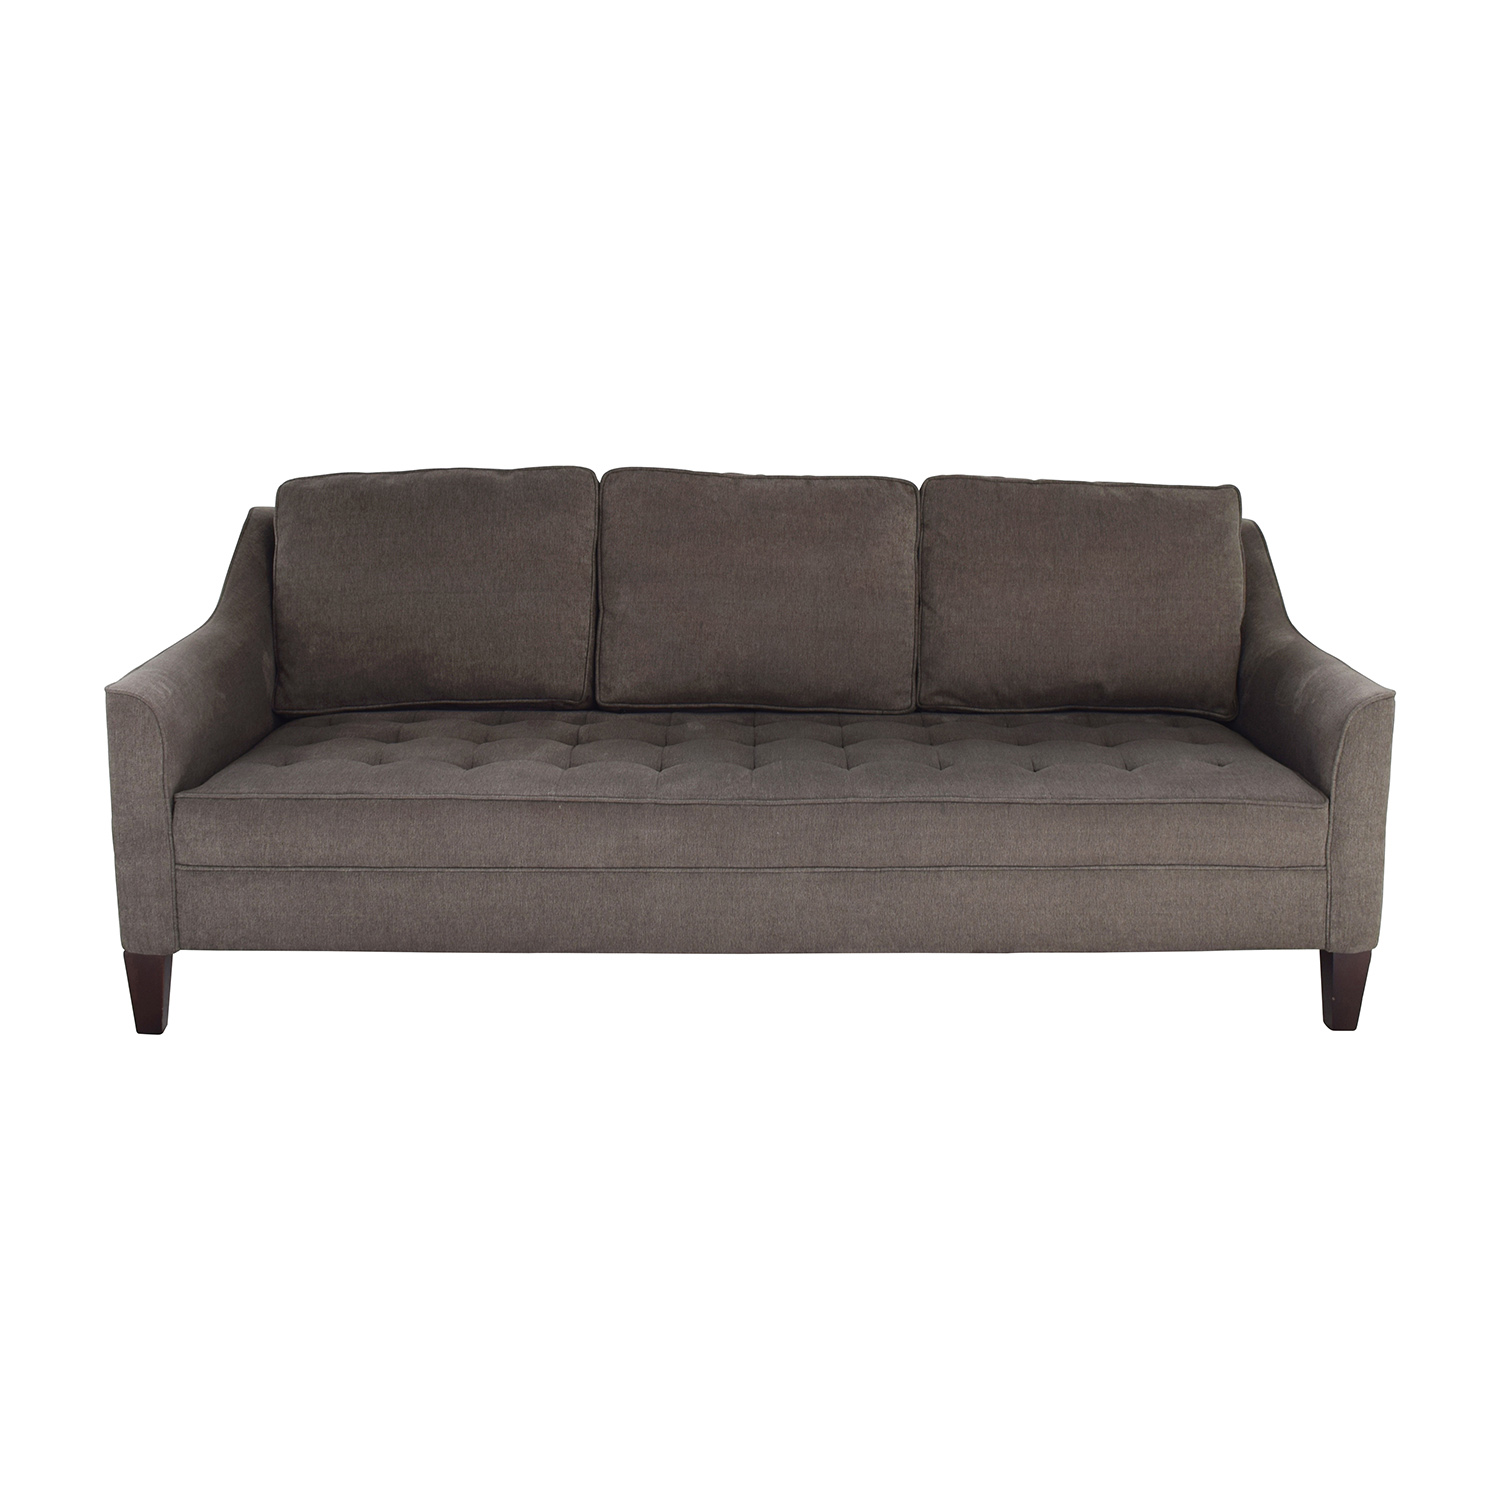 parker sofa and loveseat sofas buffalo ny 51 off haverty s in grey